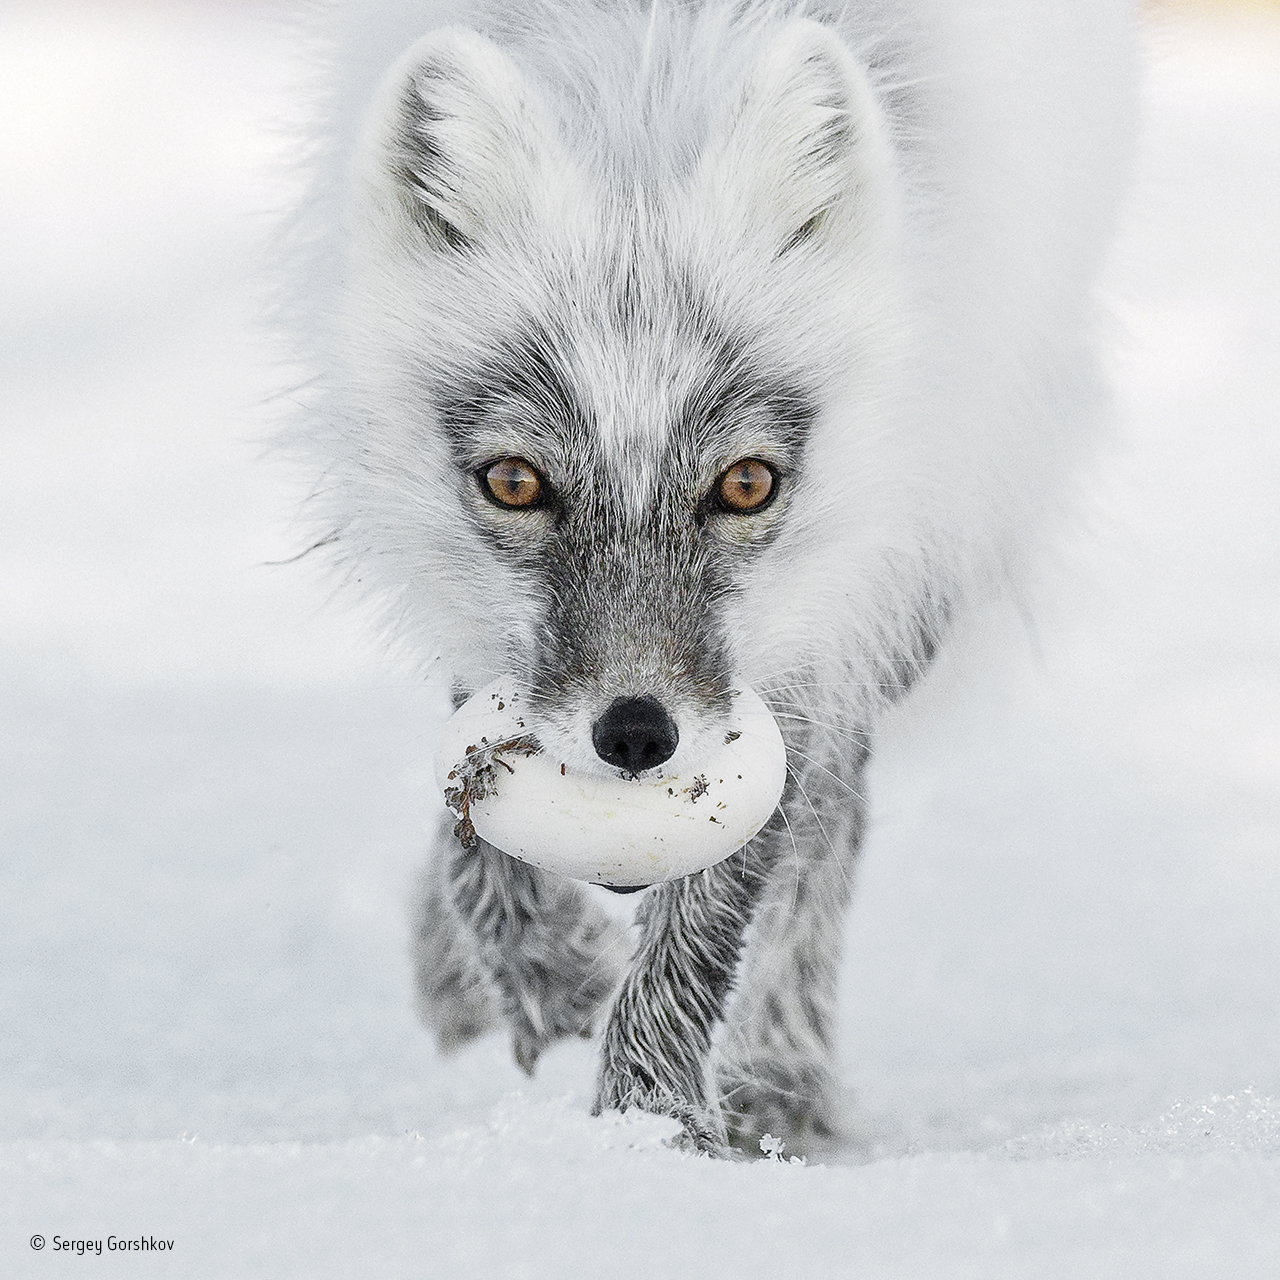 Photo of an Arctic fox with an egg